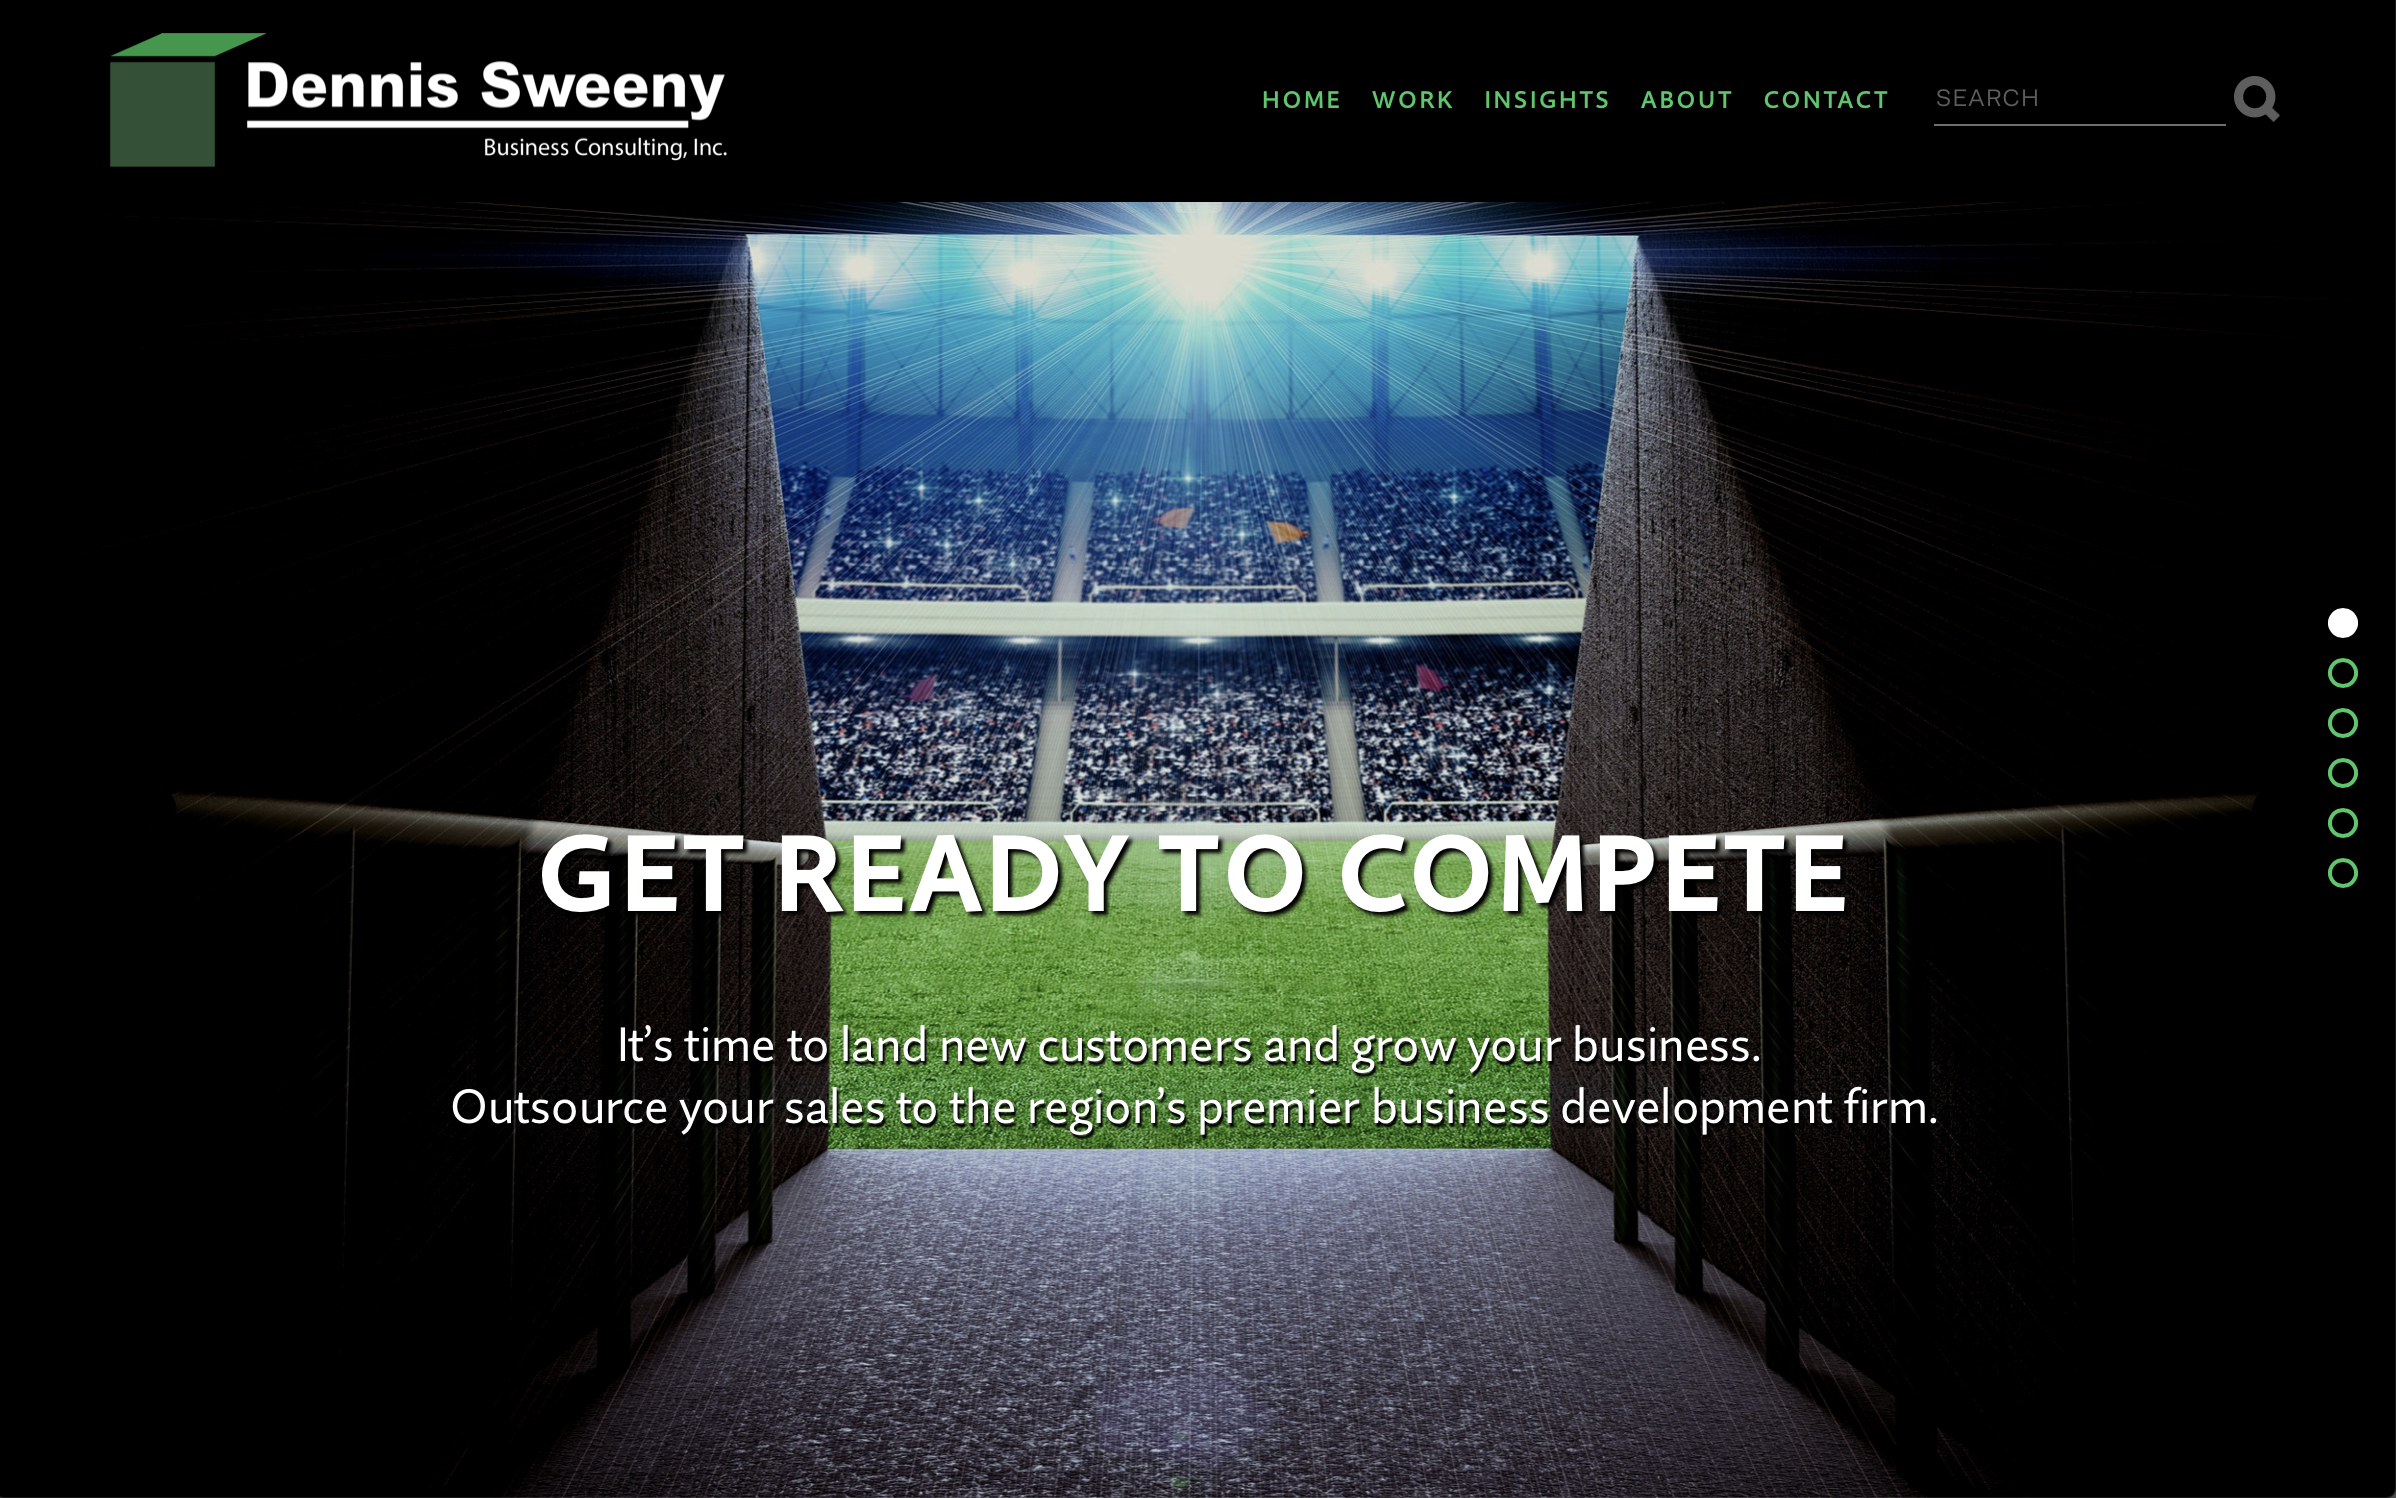 Dennis Sweeny Business Consulting, Inc.